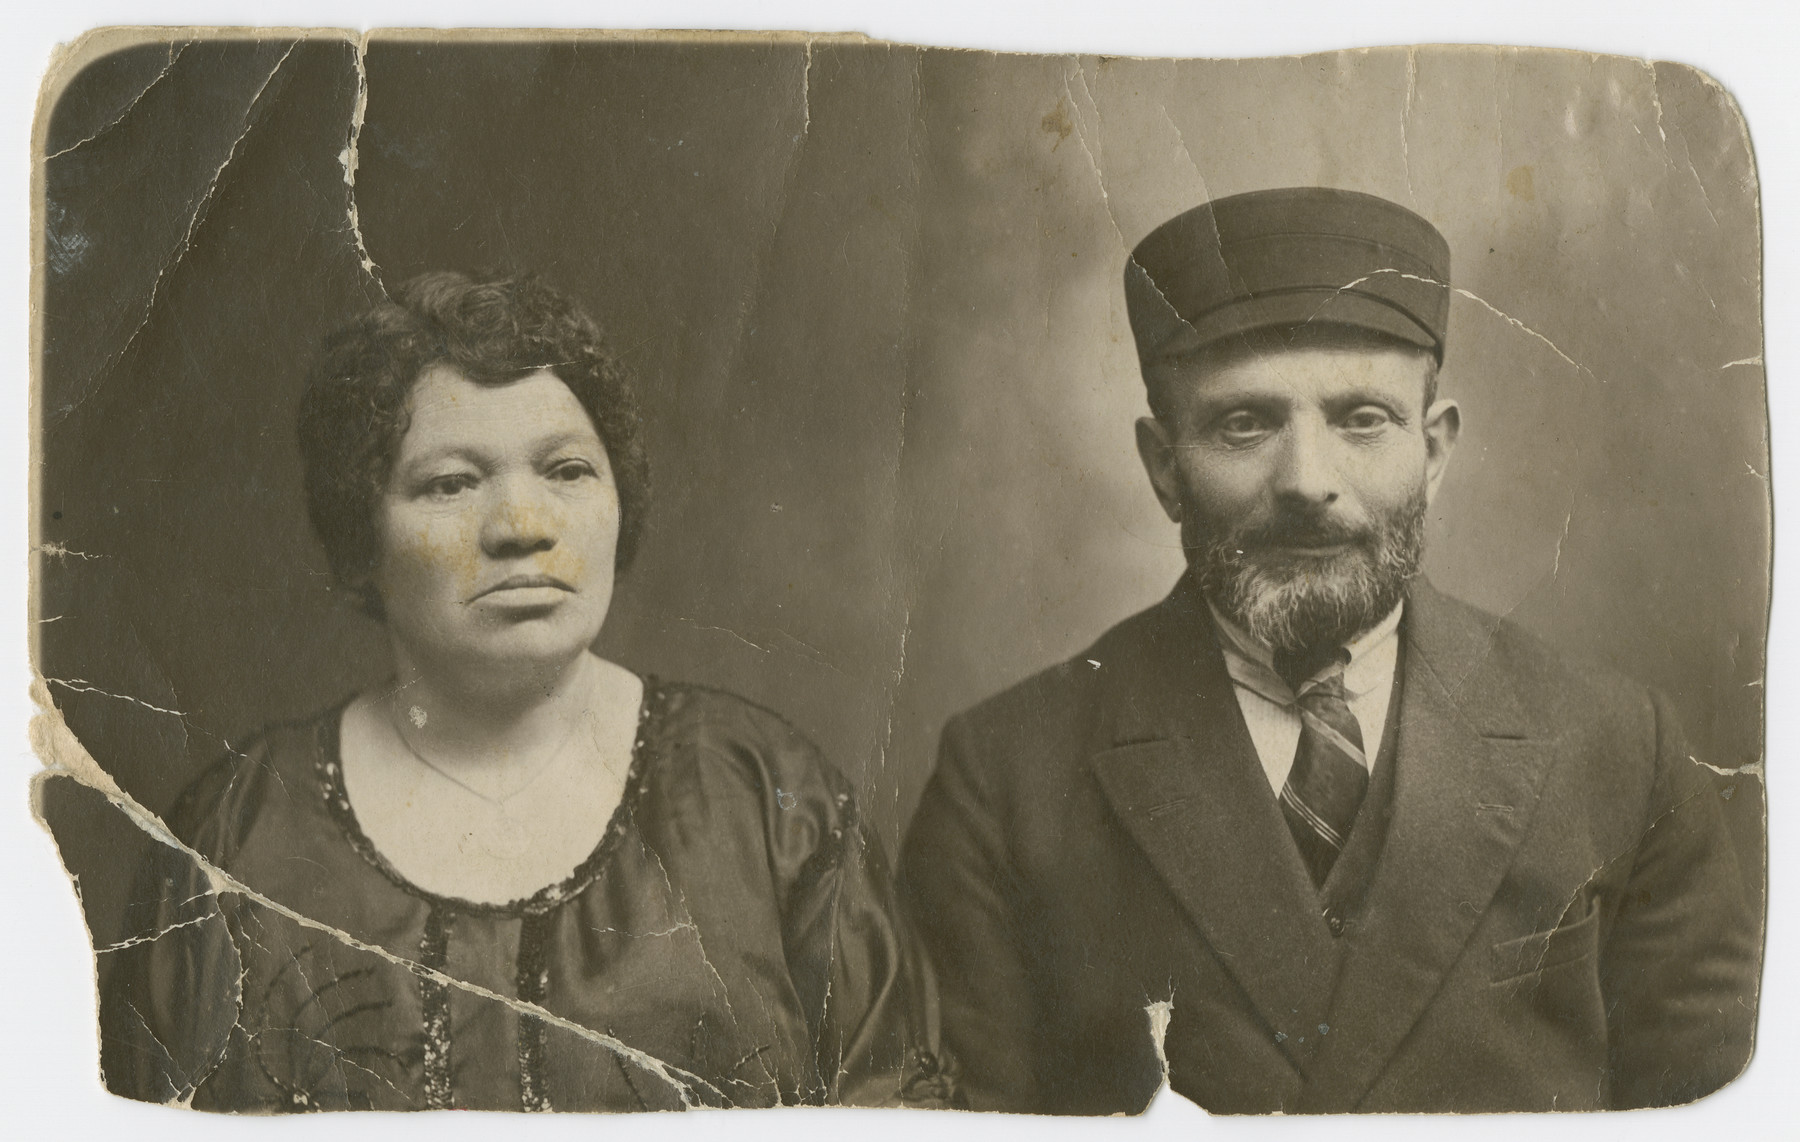 Studio portrait of Israel and Chuma Lubochinski, parents of Malka Lubochinski.